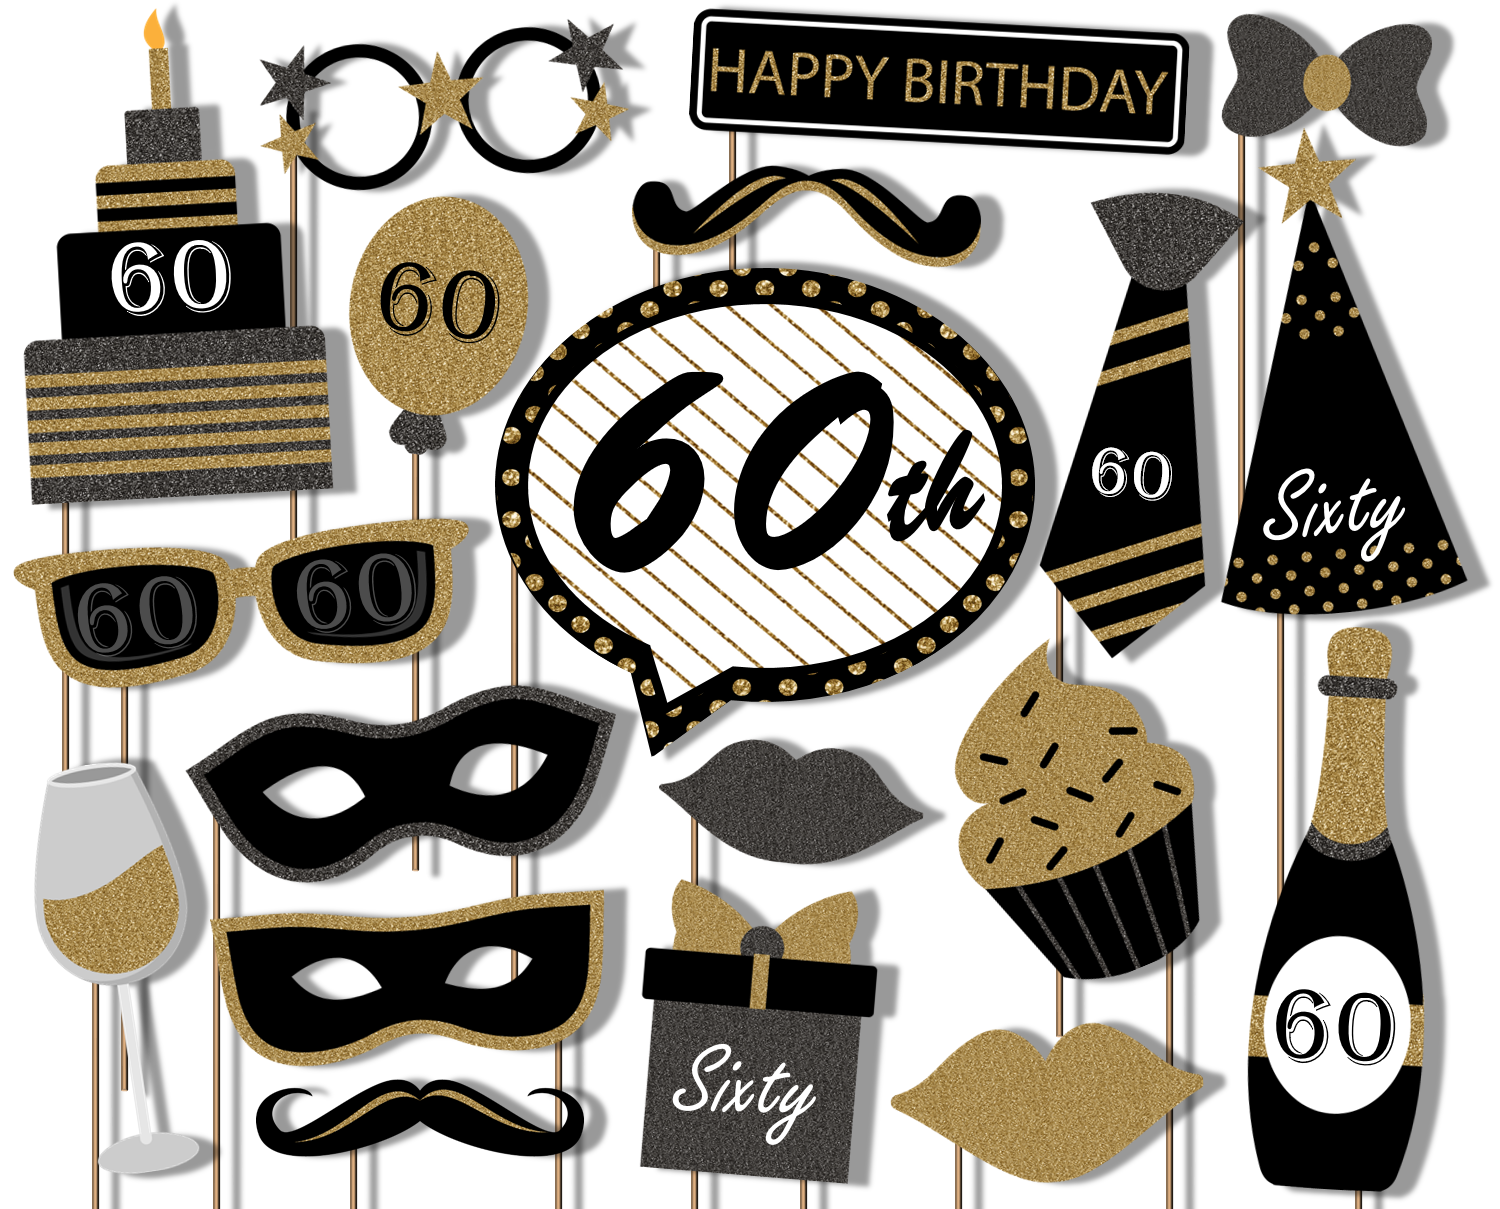 60th Birthday Black & Gold Photo Booth Props 20pcs Assembled - BirthdayGalore.com